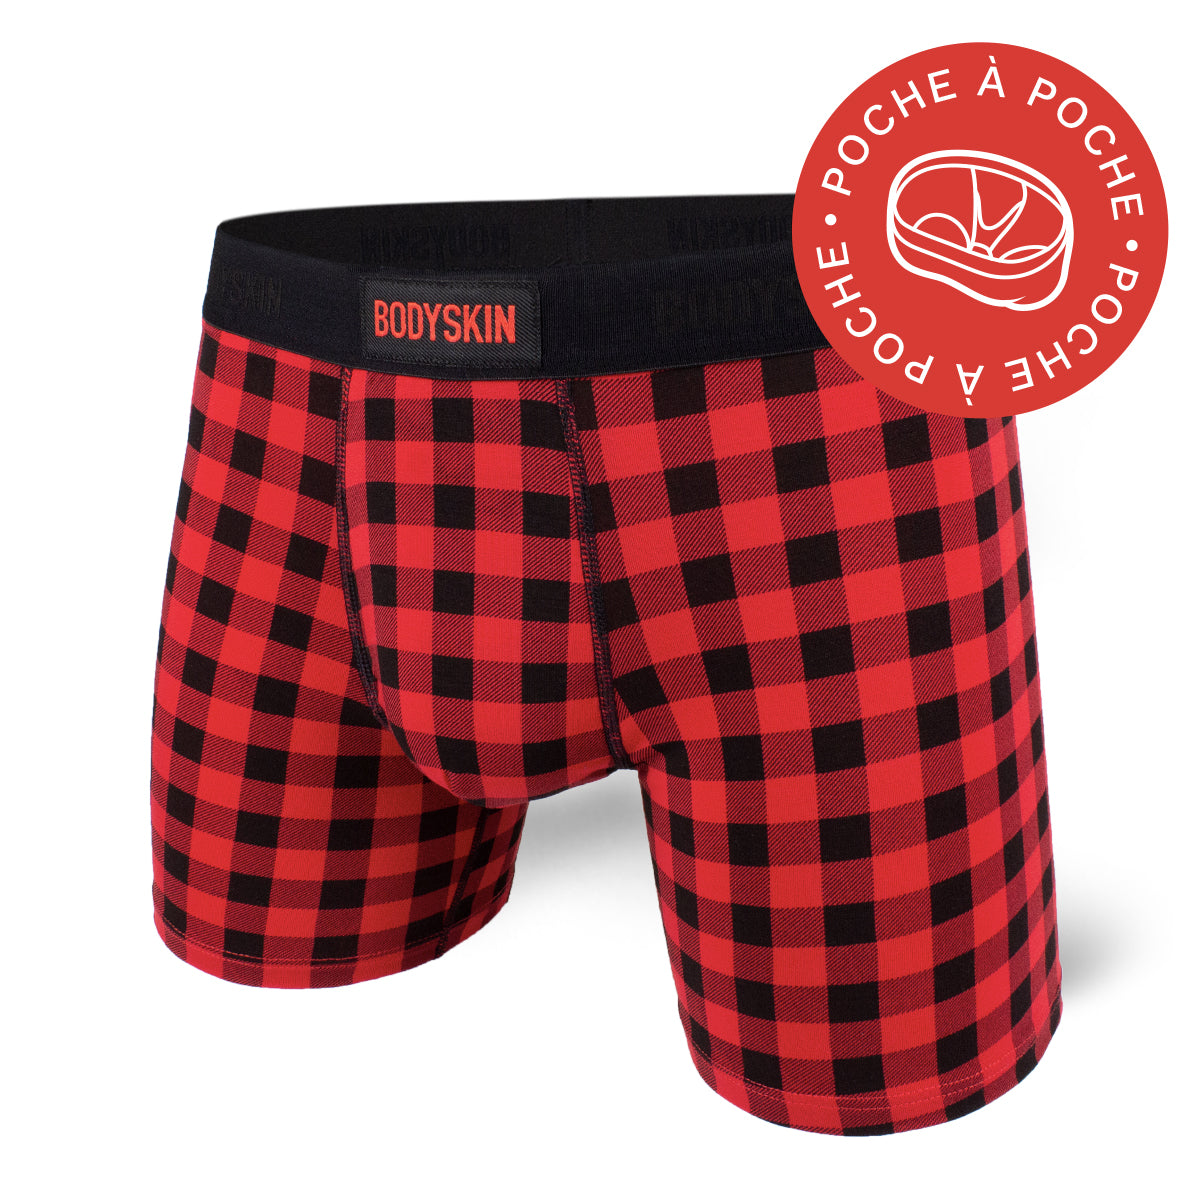 Boxer Bodyskin Lucky avec poche check red